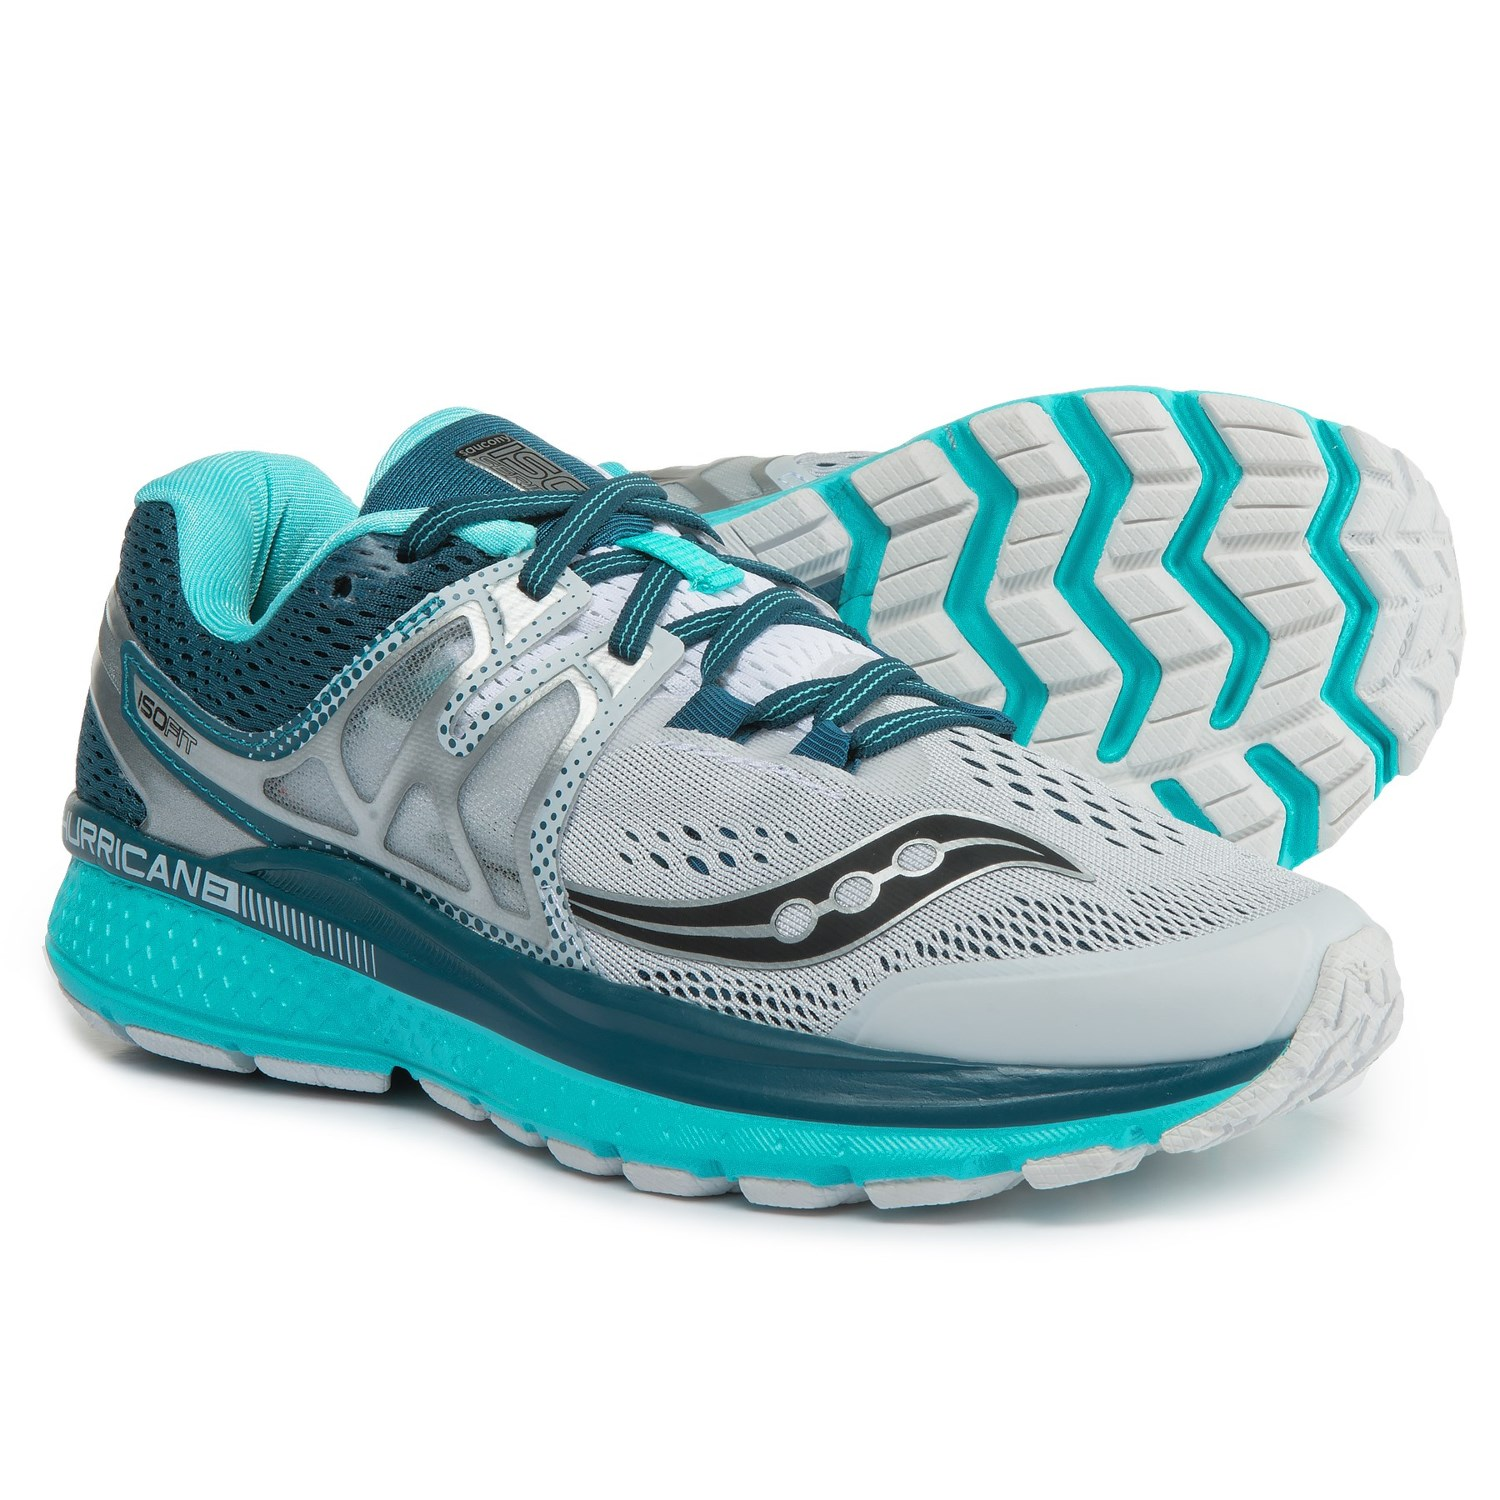 Saucony Hurricane ISO 3 Running Shoes (For Women) - Save 50%